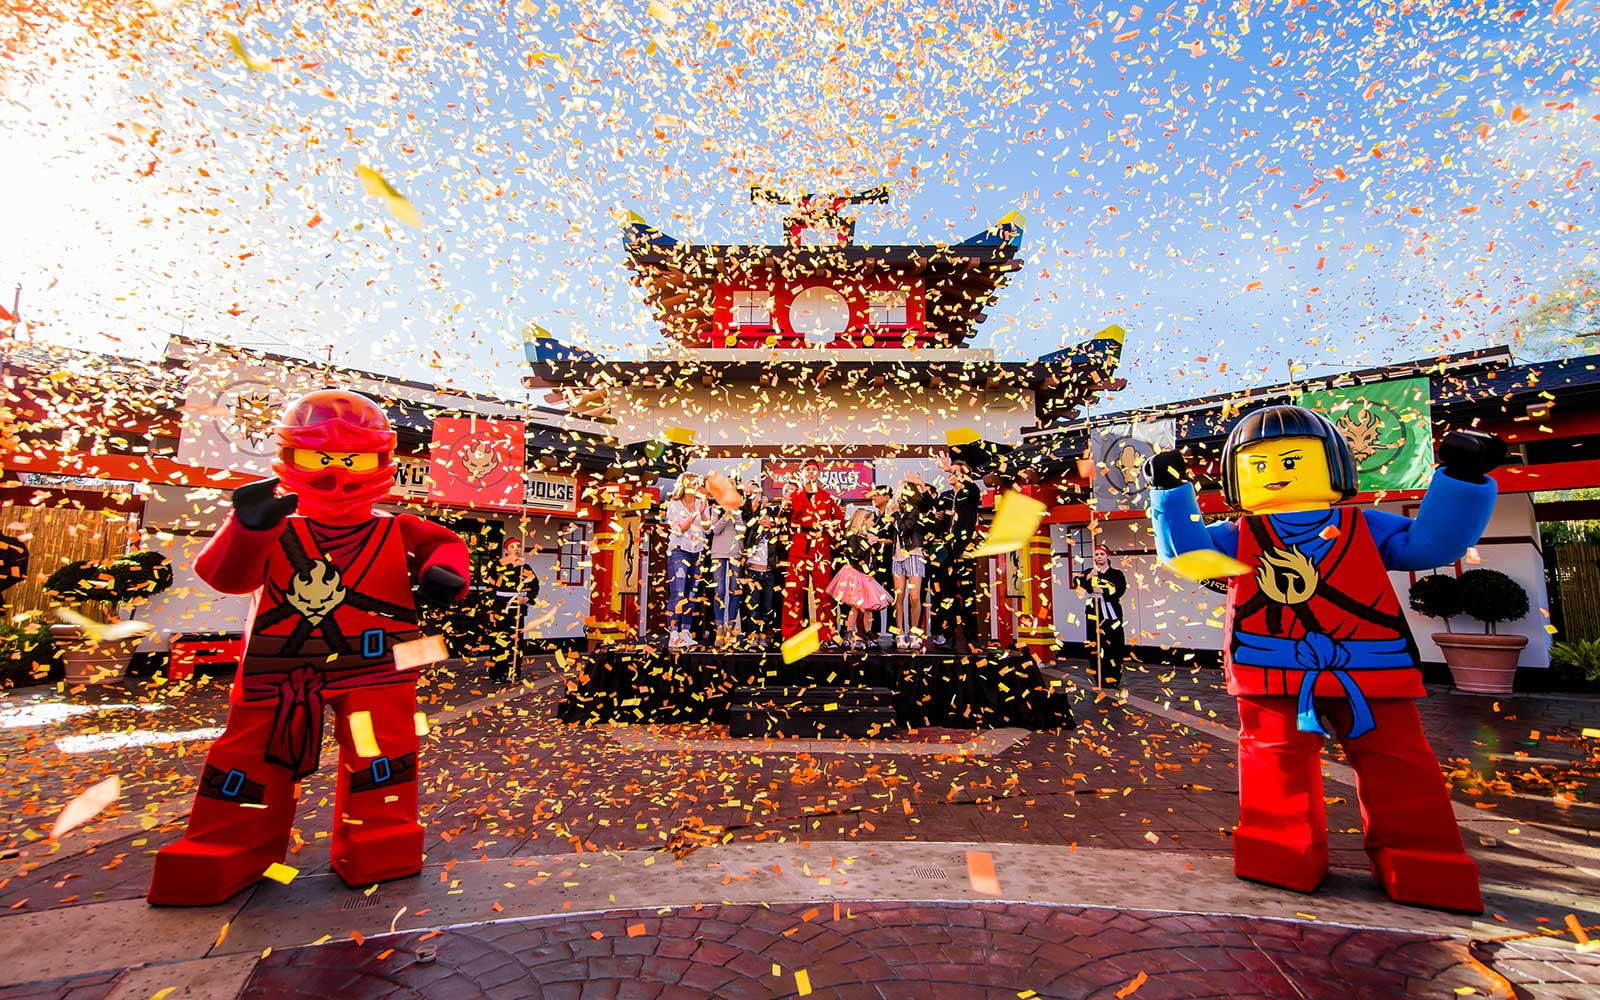 Legoland Florida — Ninjago World